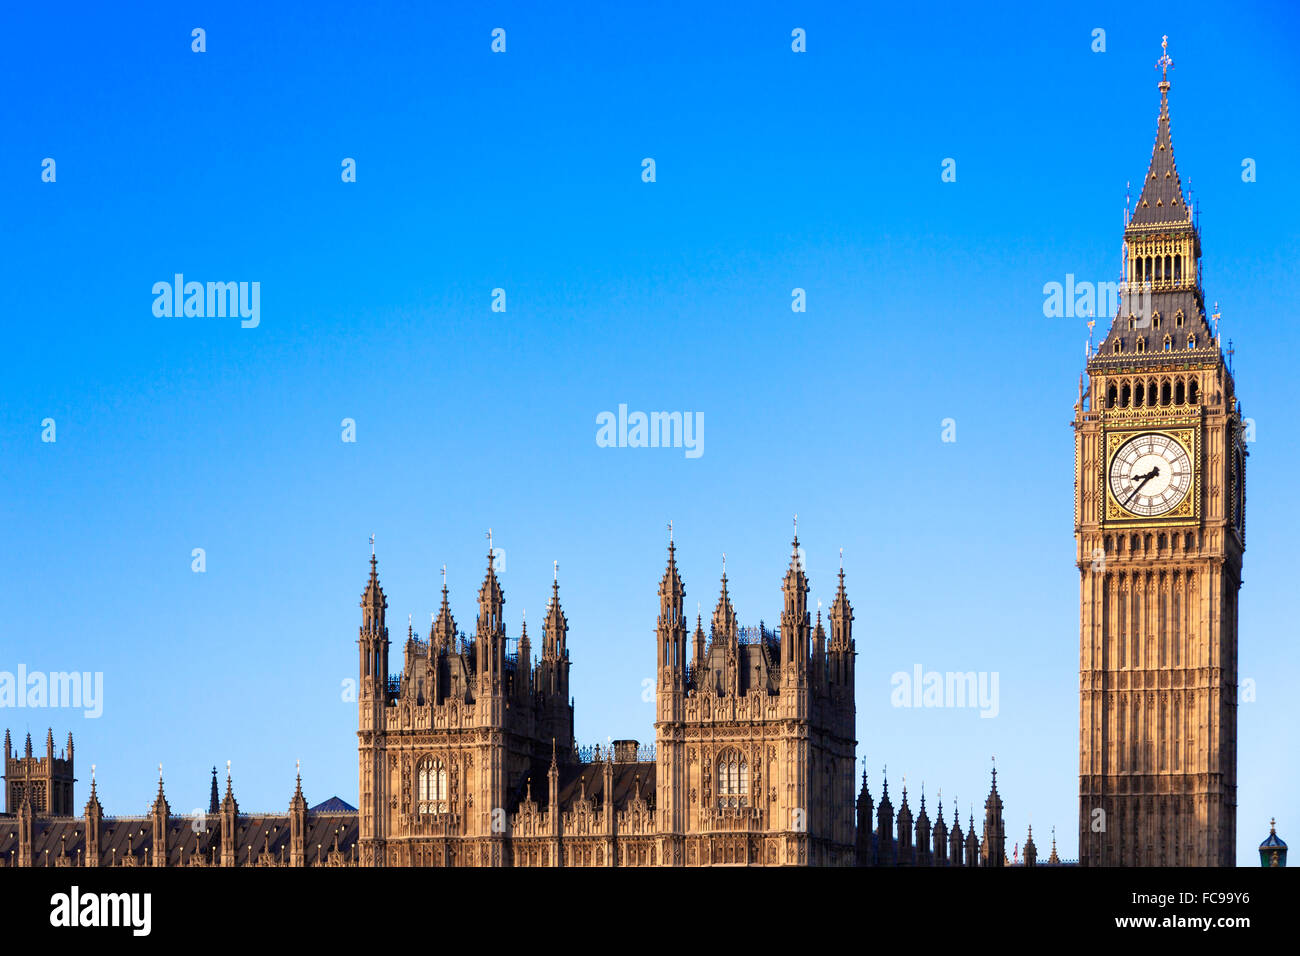 Famous Big Ben in Central London - Stock Image